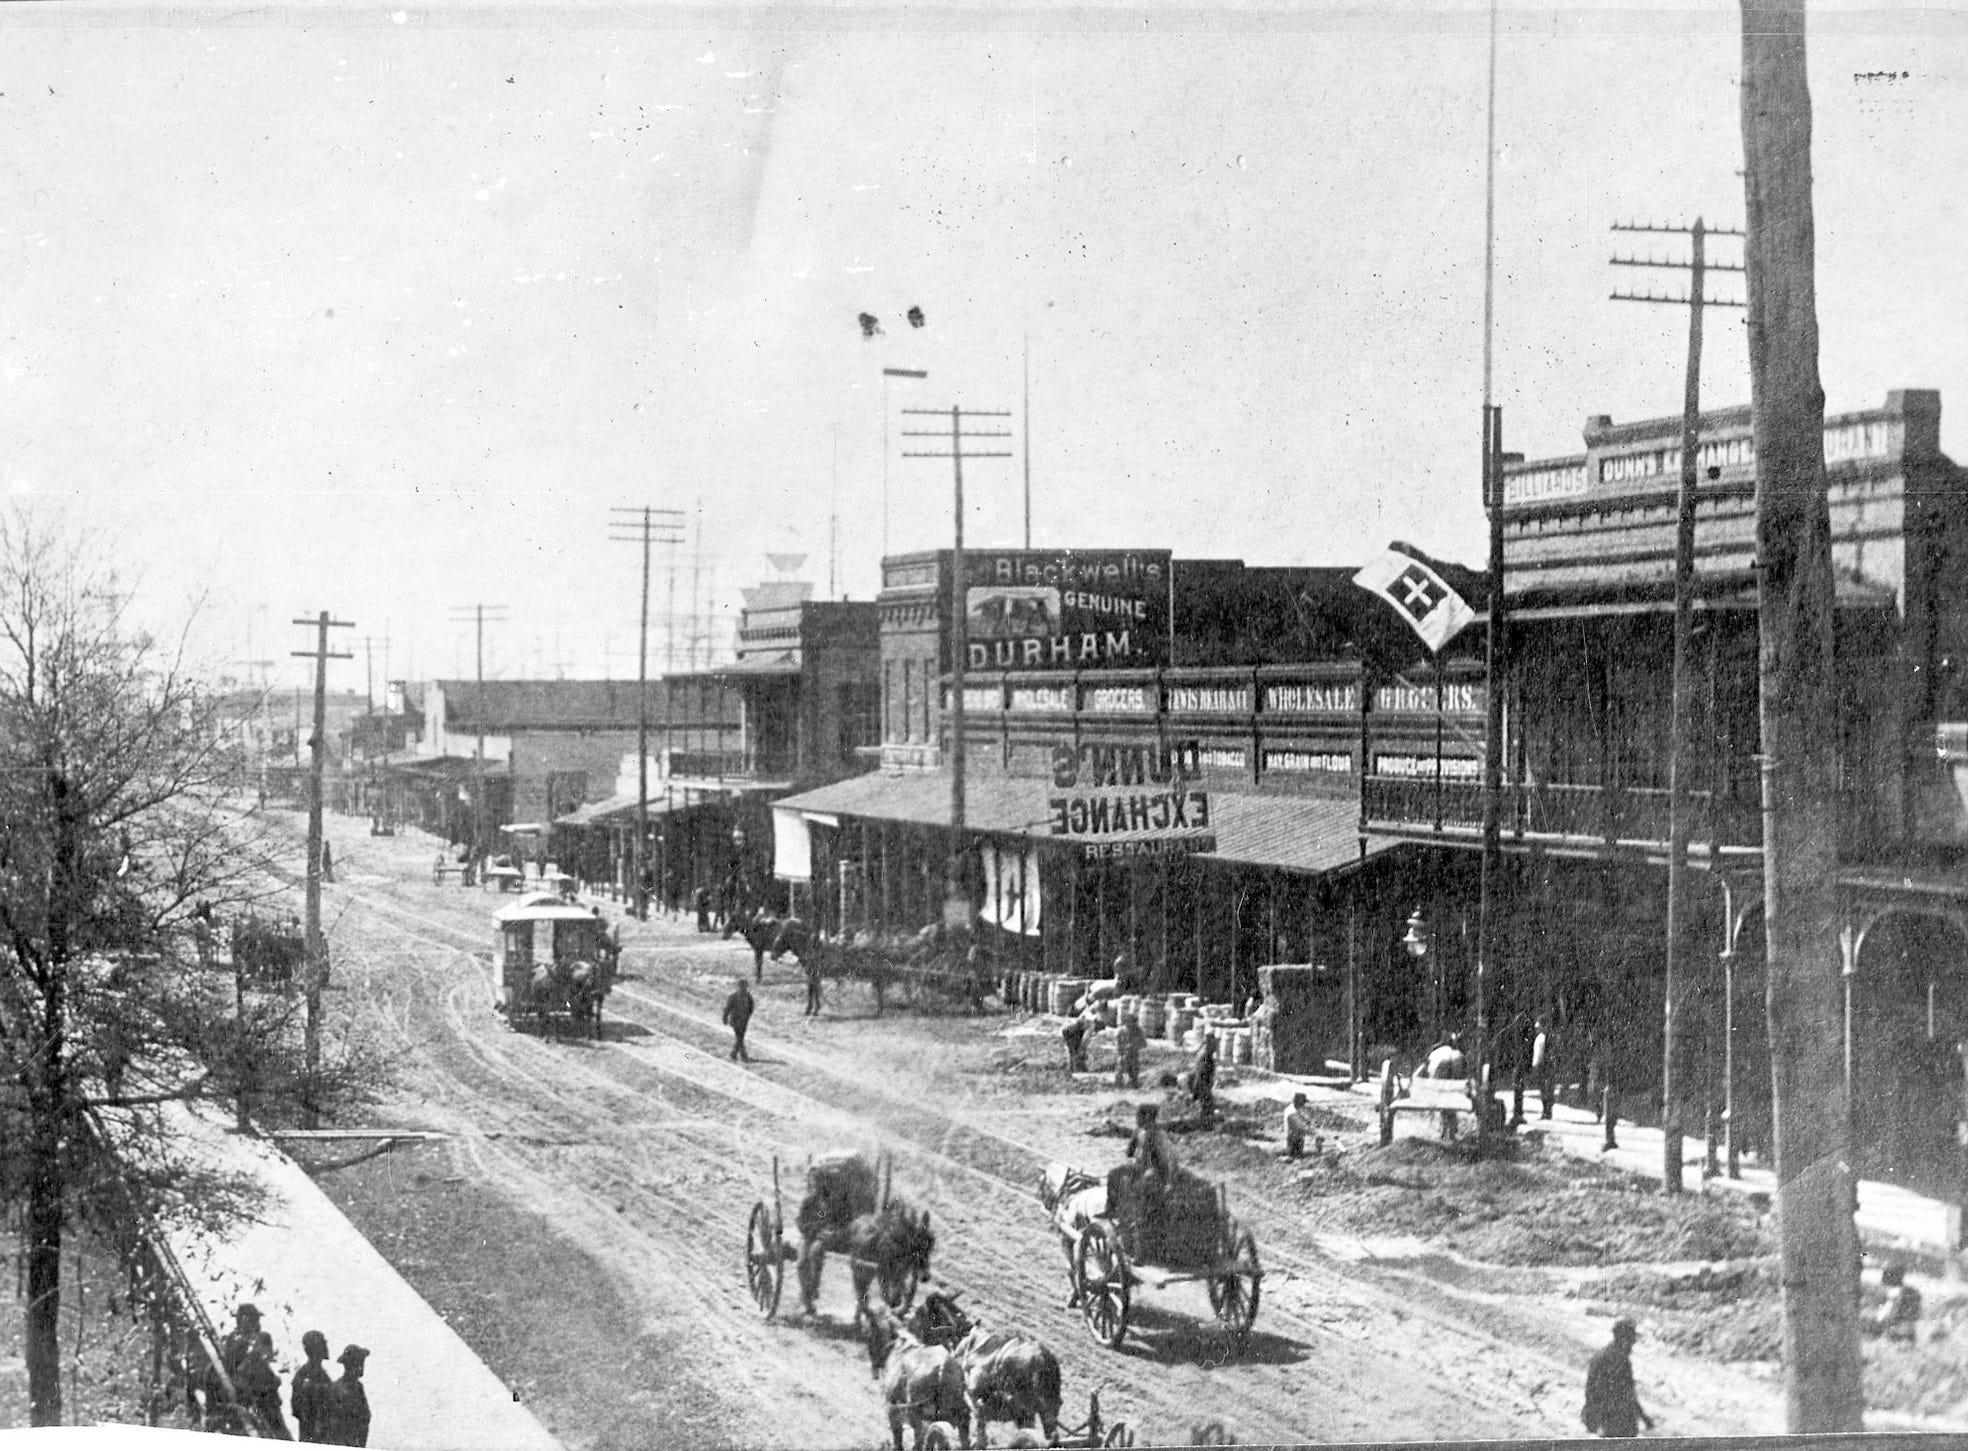 South view of Palafox Street. Date unknown.